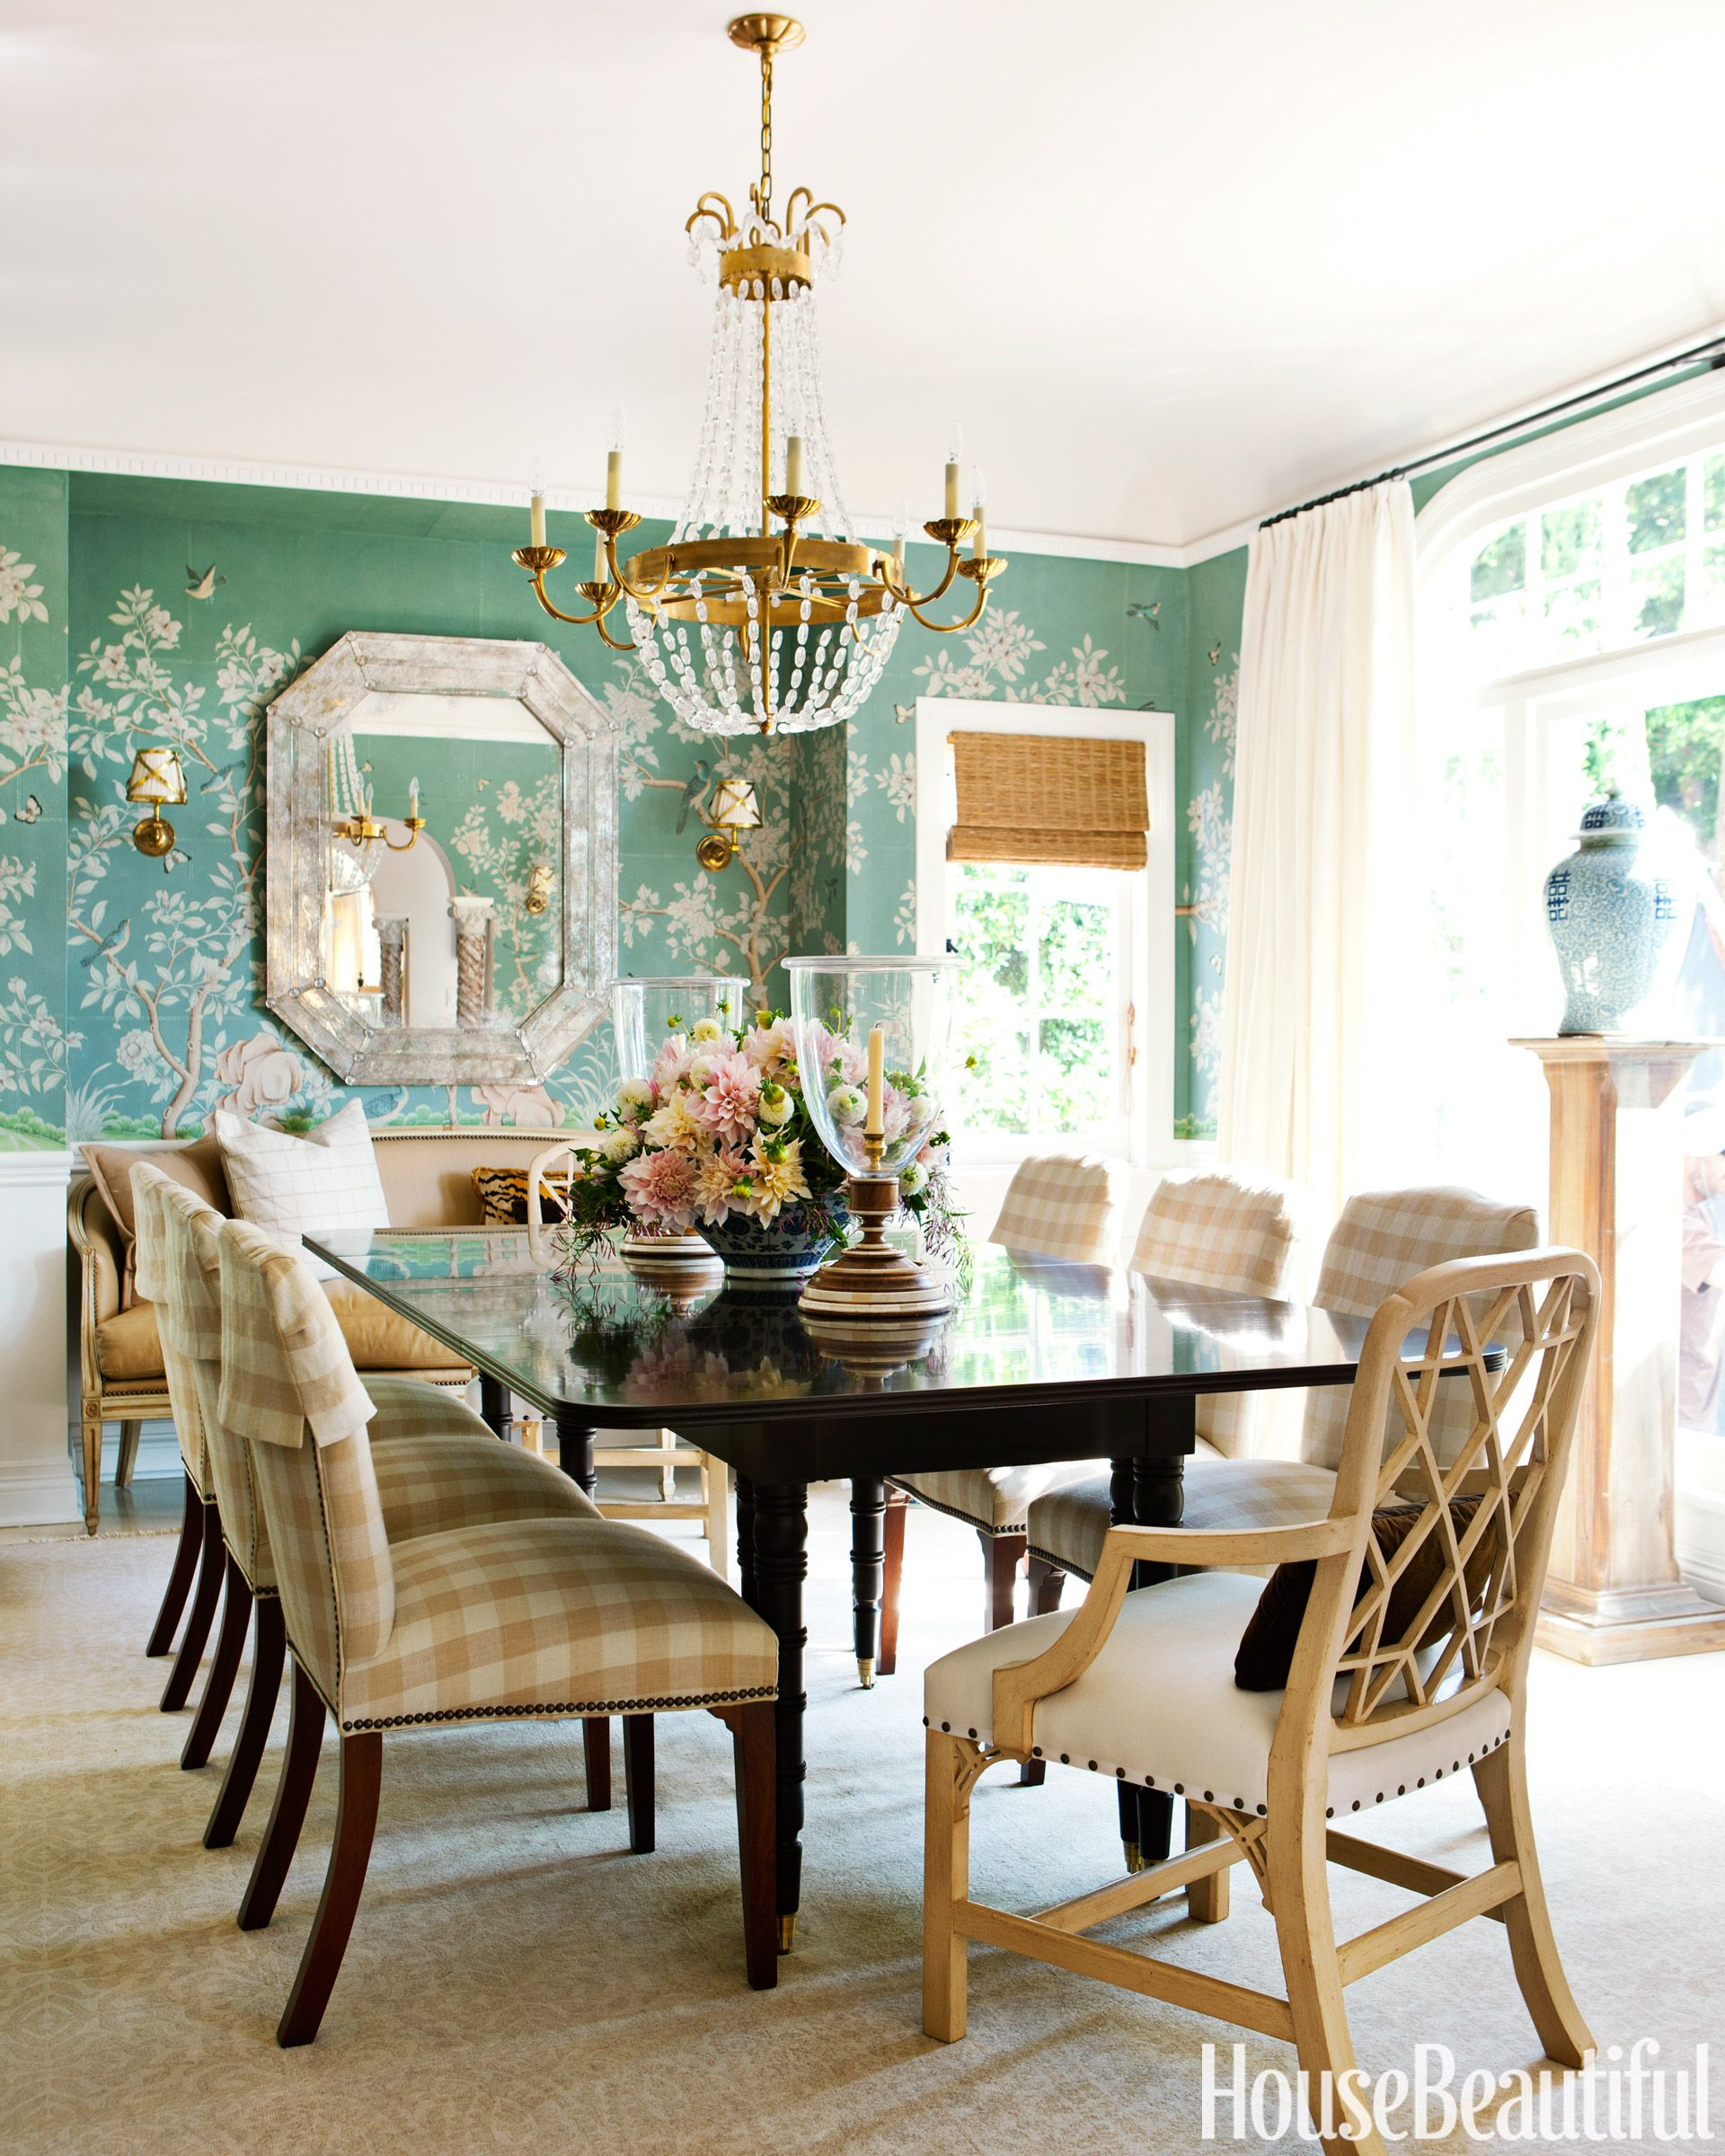 Decorating a Breezy, Caribbean-Inspired House